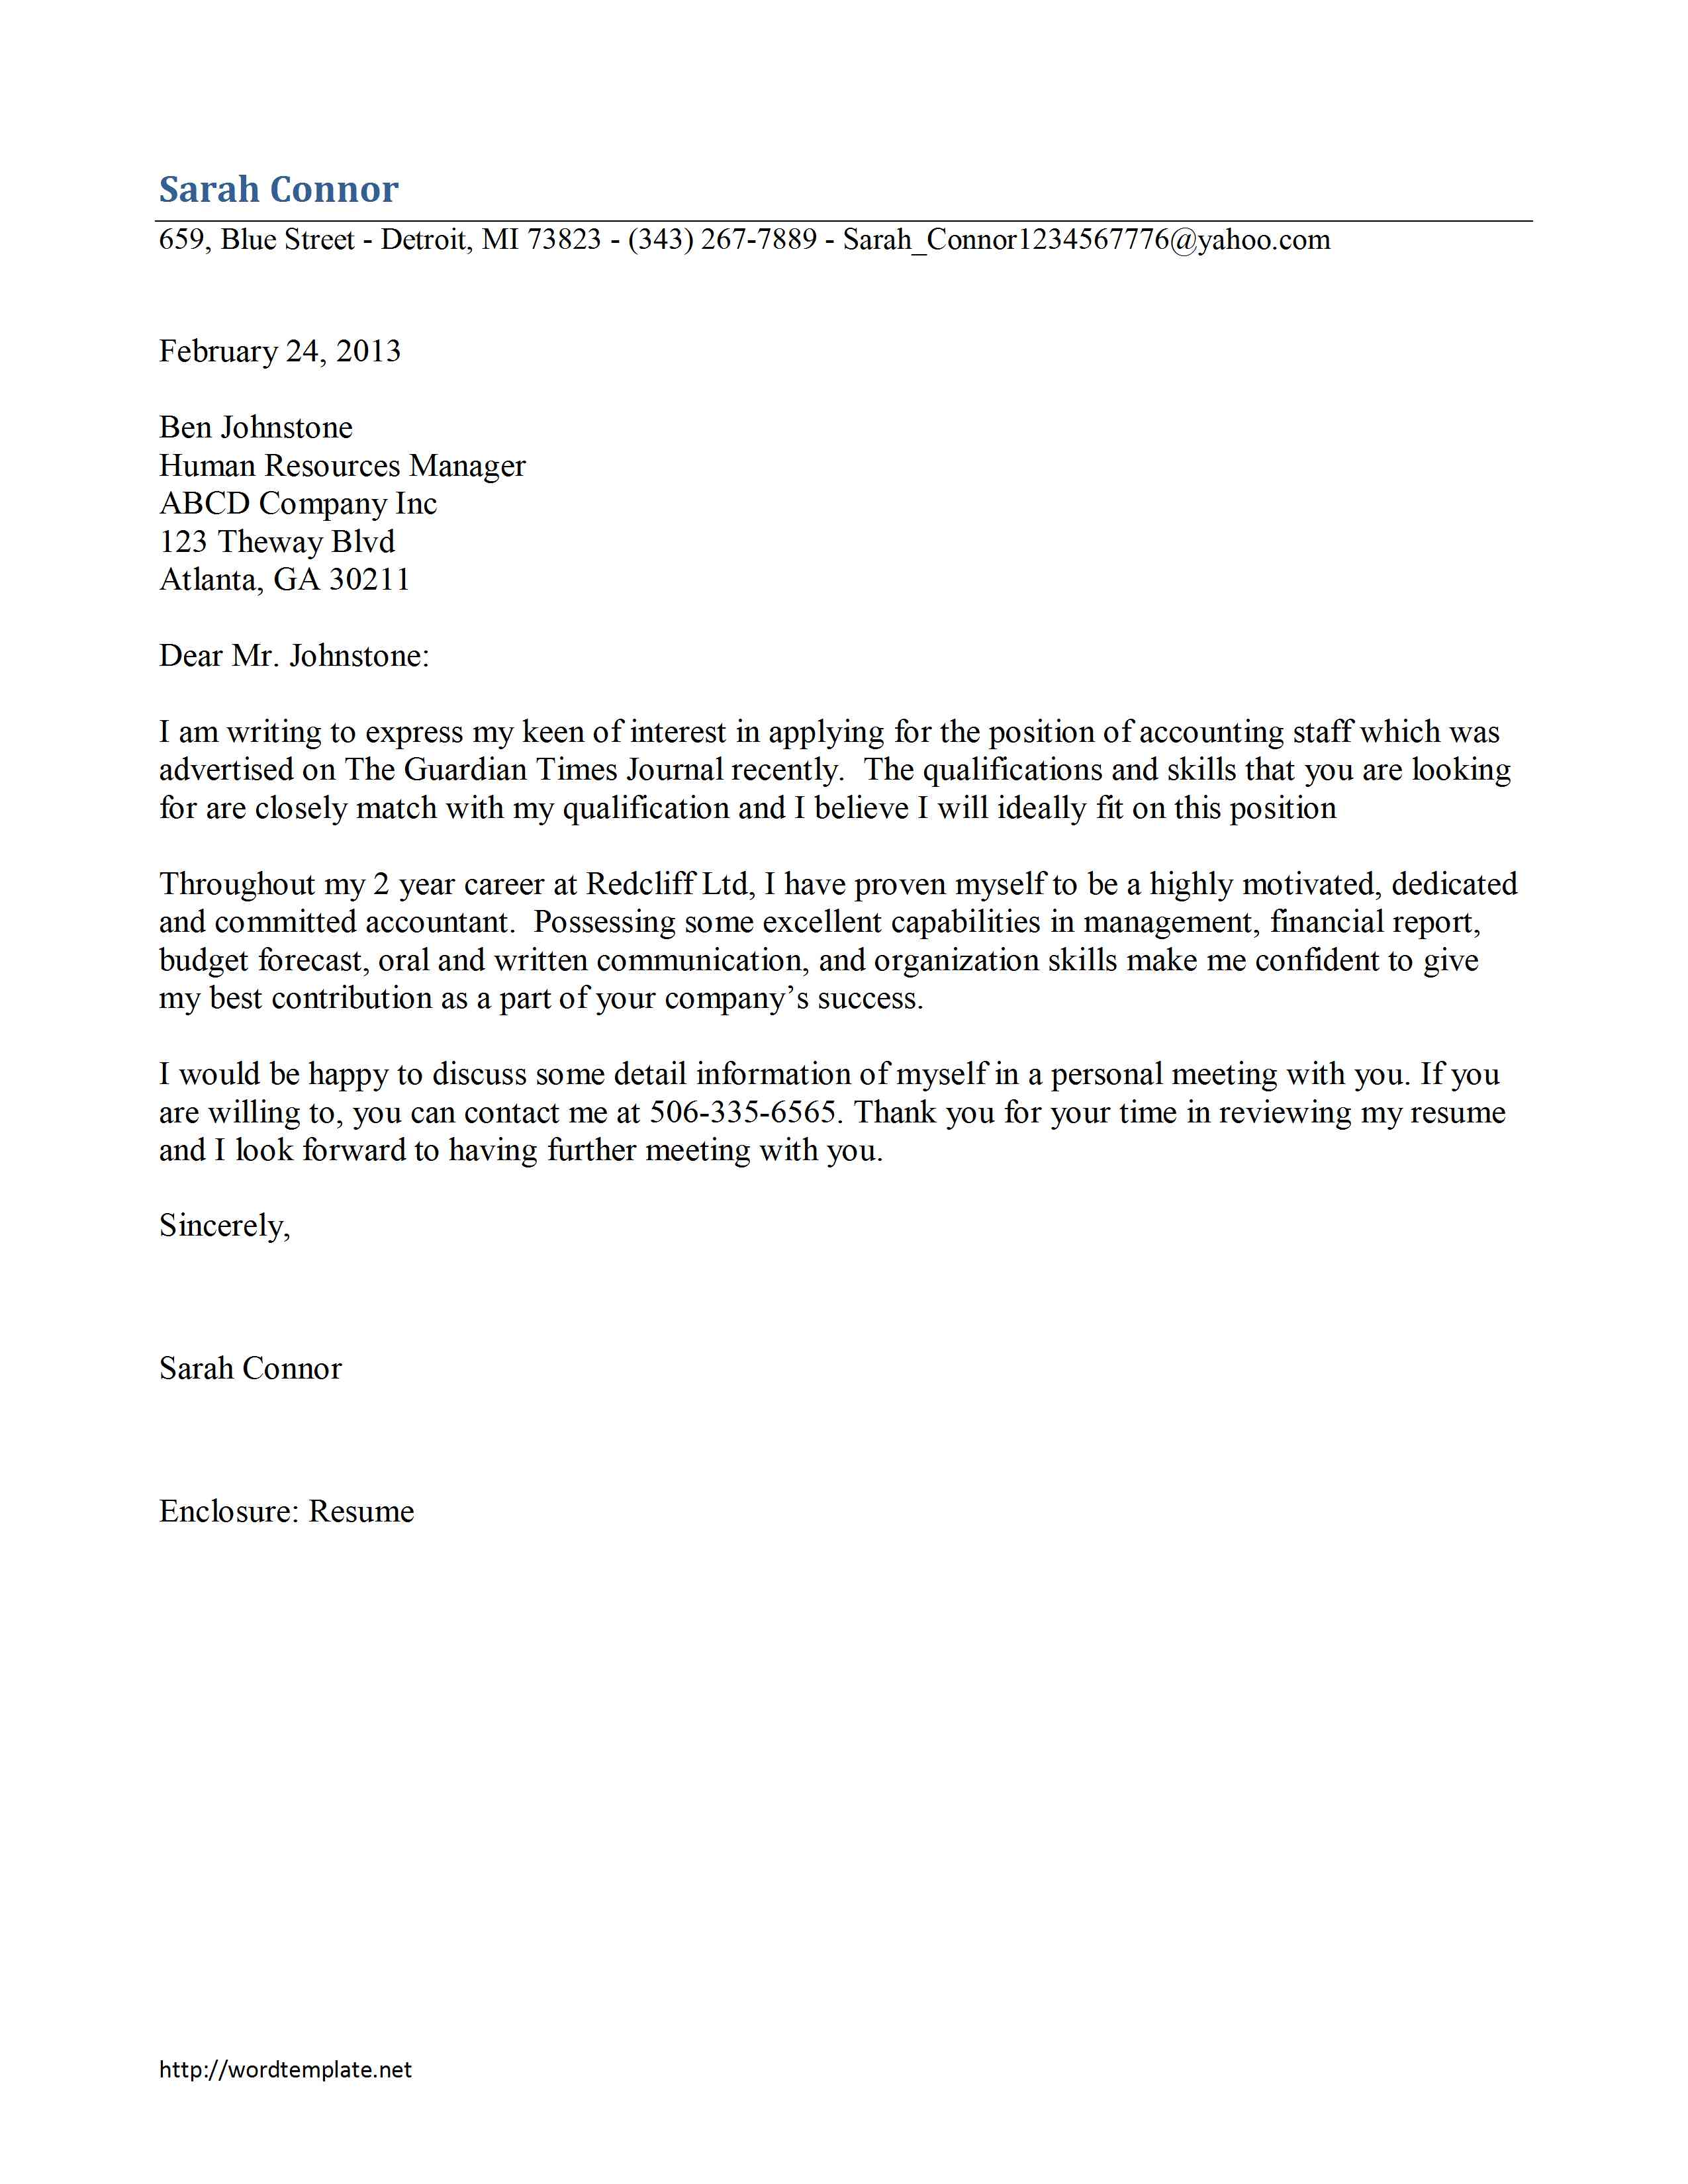 Accounting Staff Cover Letter Template